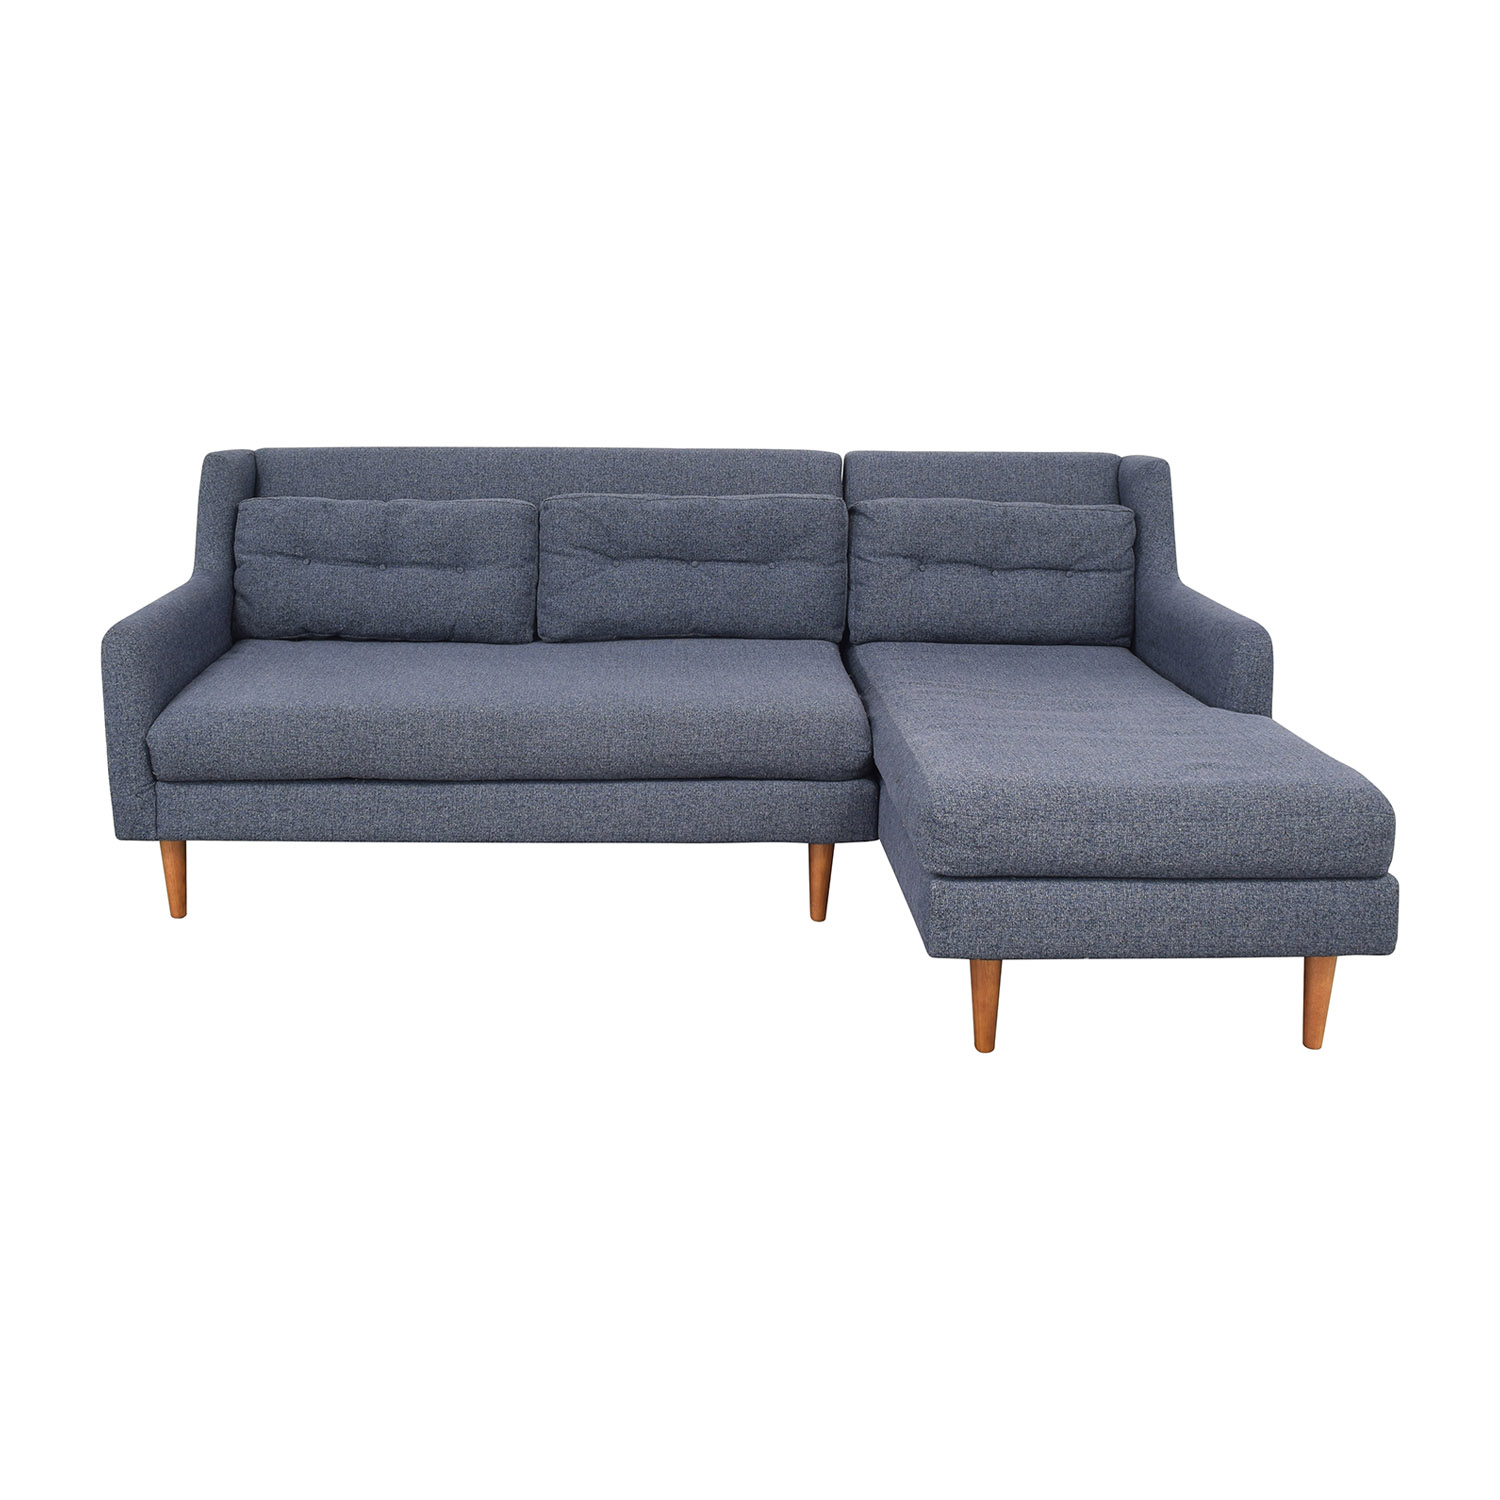 23 Off West Elm Crosby Mid Century 2 Piece Chaise Sectional Sofas